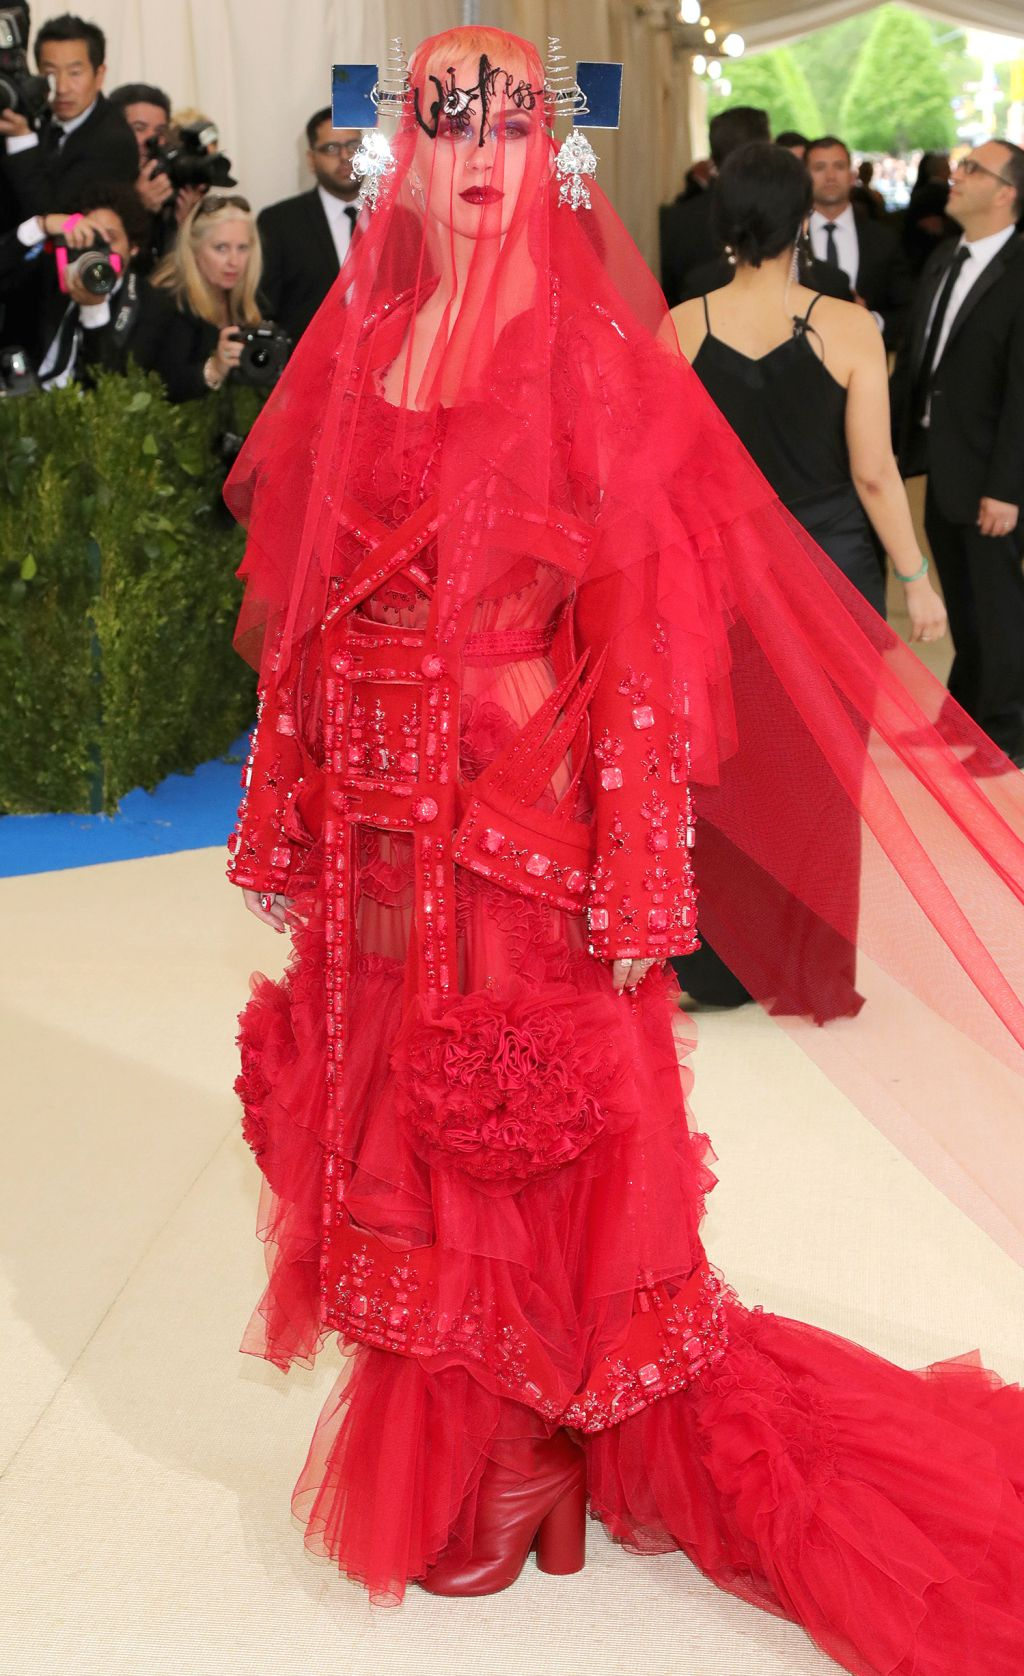 Katy Perry S Met Gala 2017 Gown Is On Theme And Over The Top Met Gala Outfits Met Gala Looks Met Gala Dresses